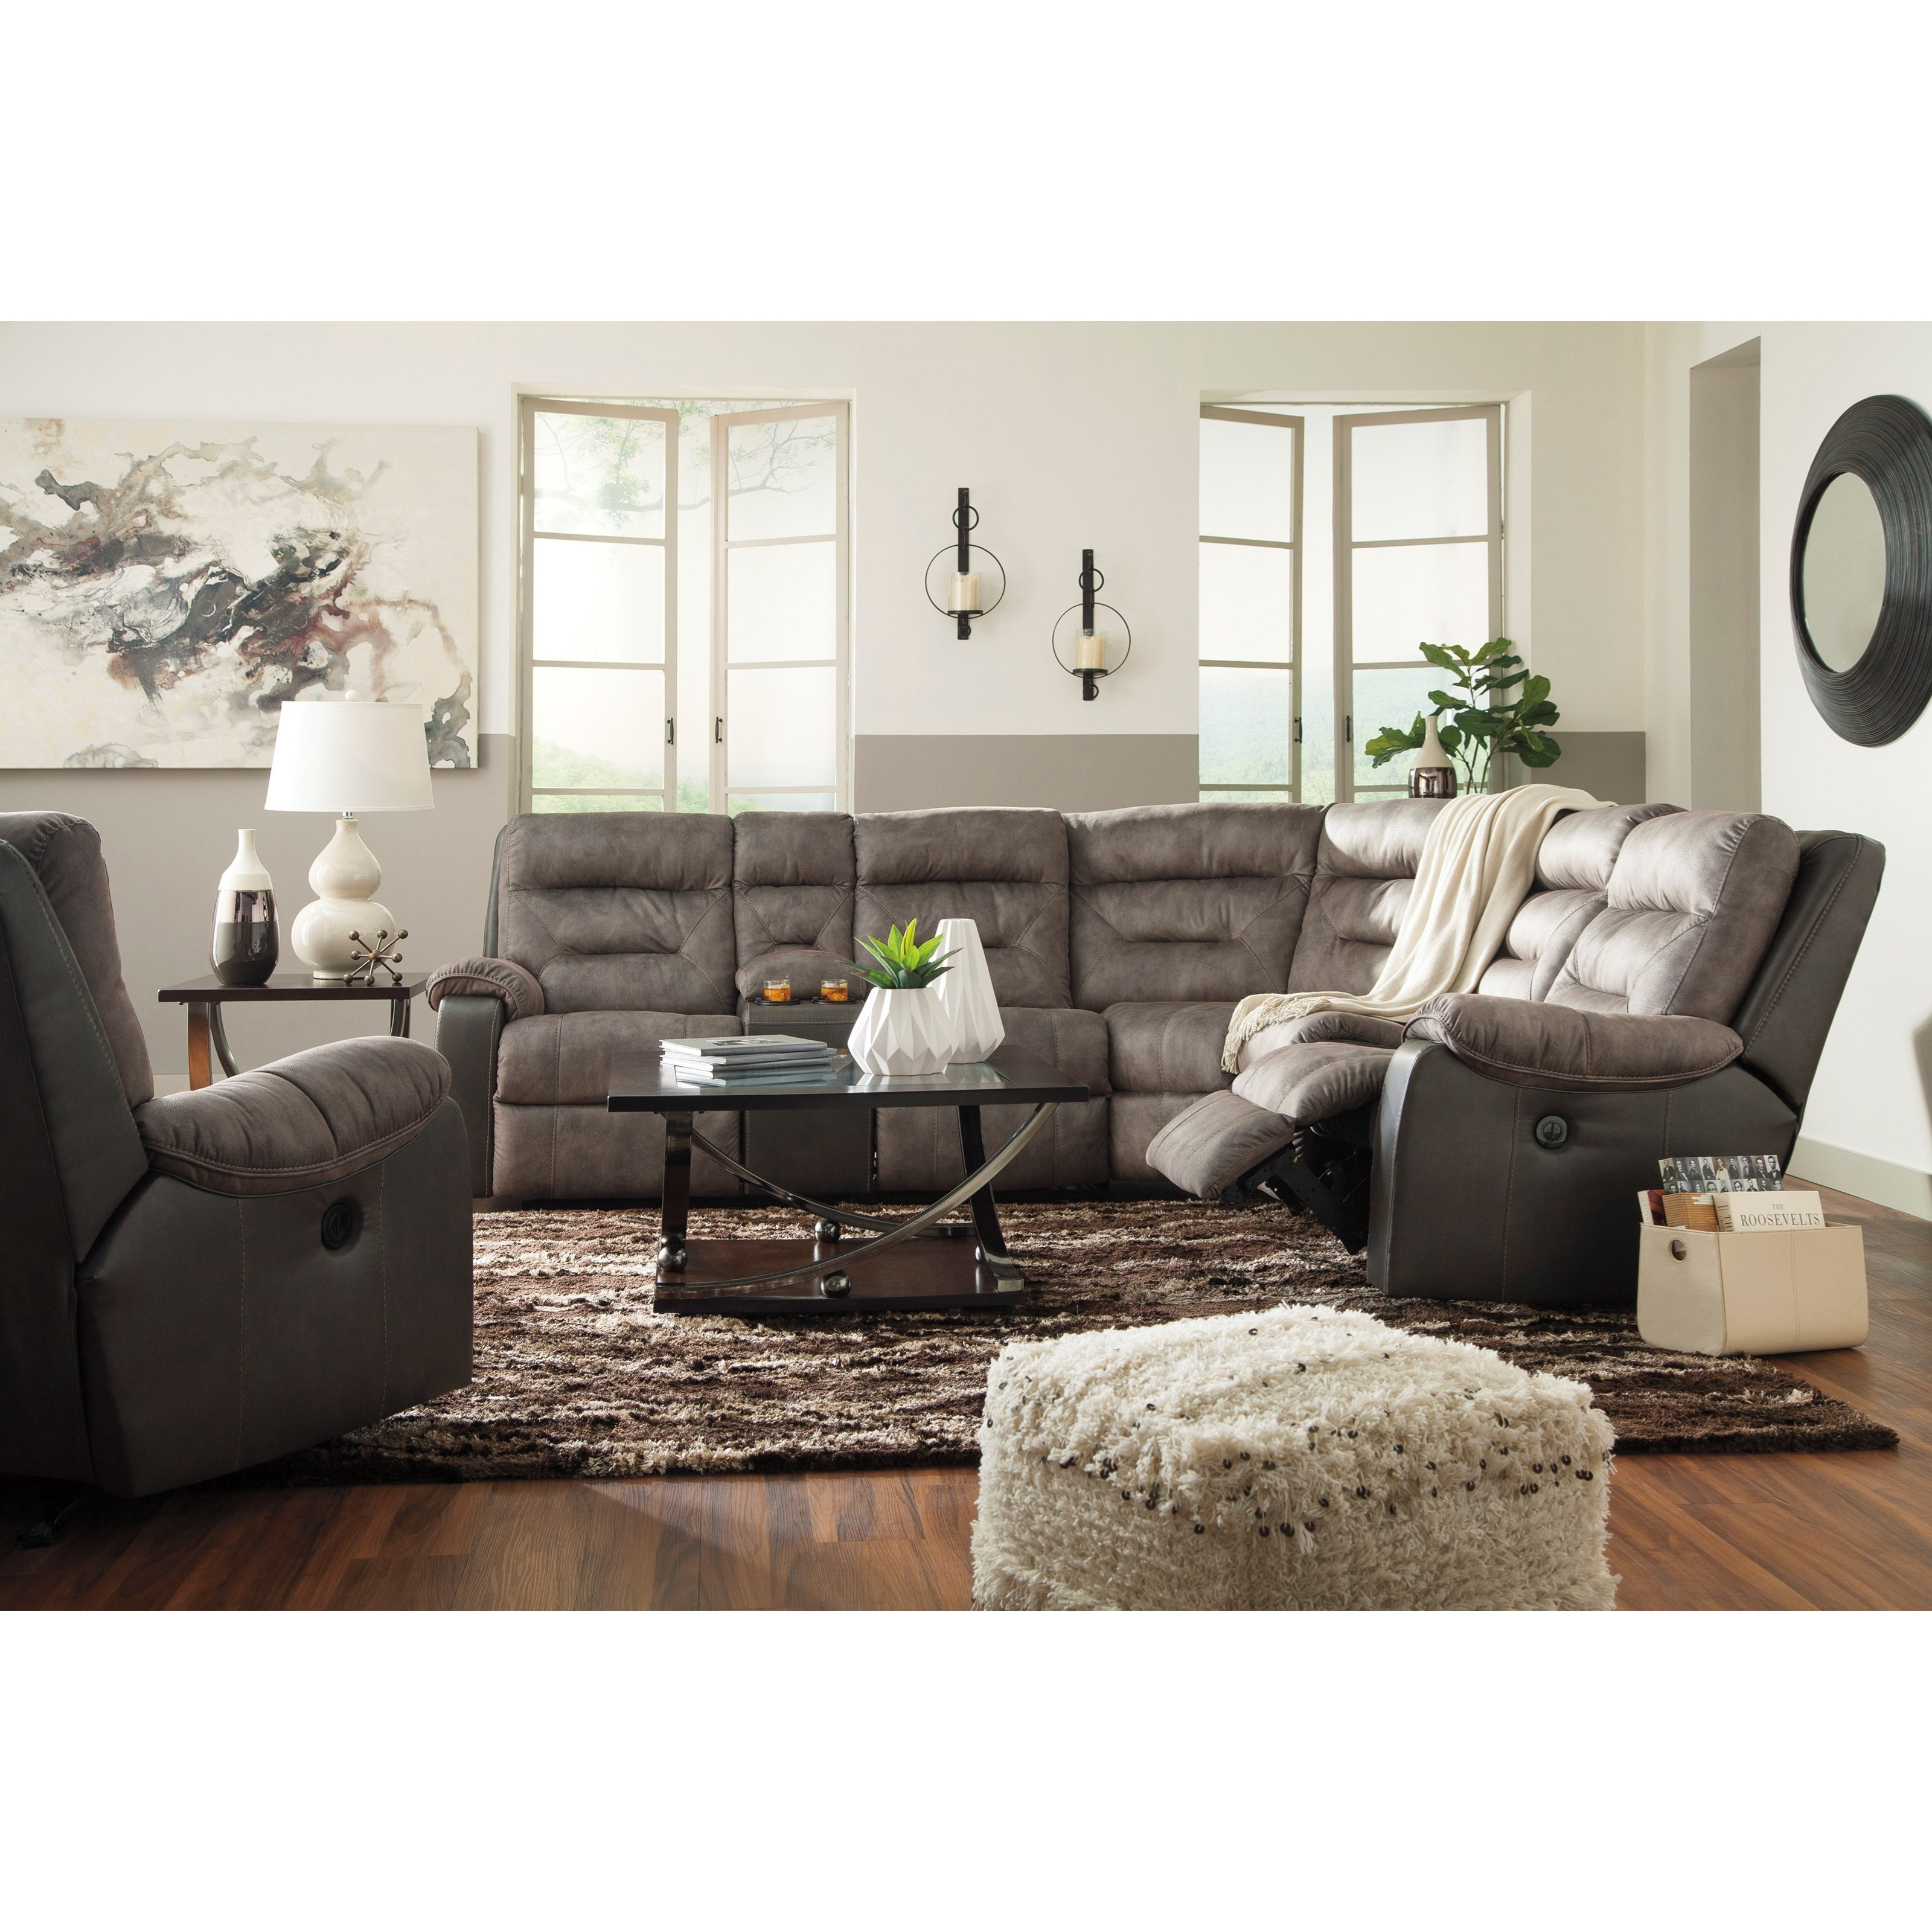 Sectional Sofas With Recliners: Benchcraft Hacklesbury Two-Tone Reclining Sectional With